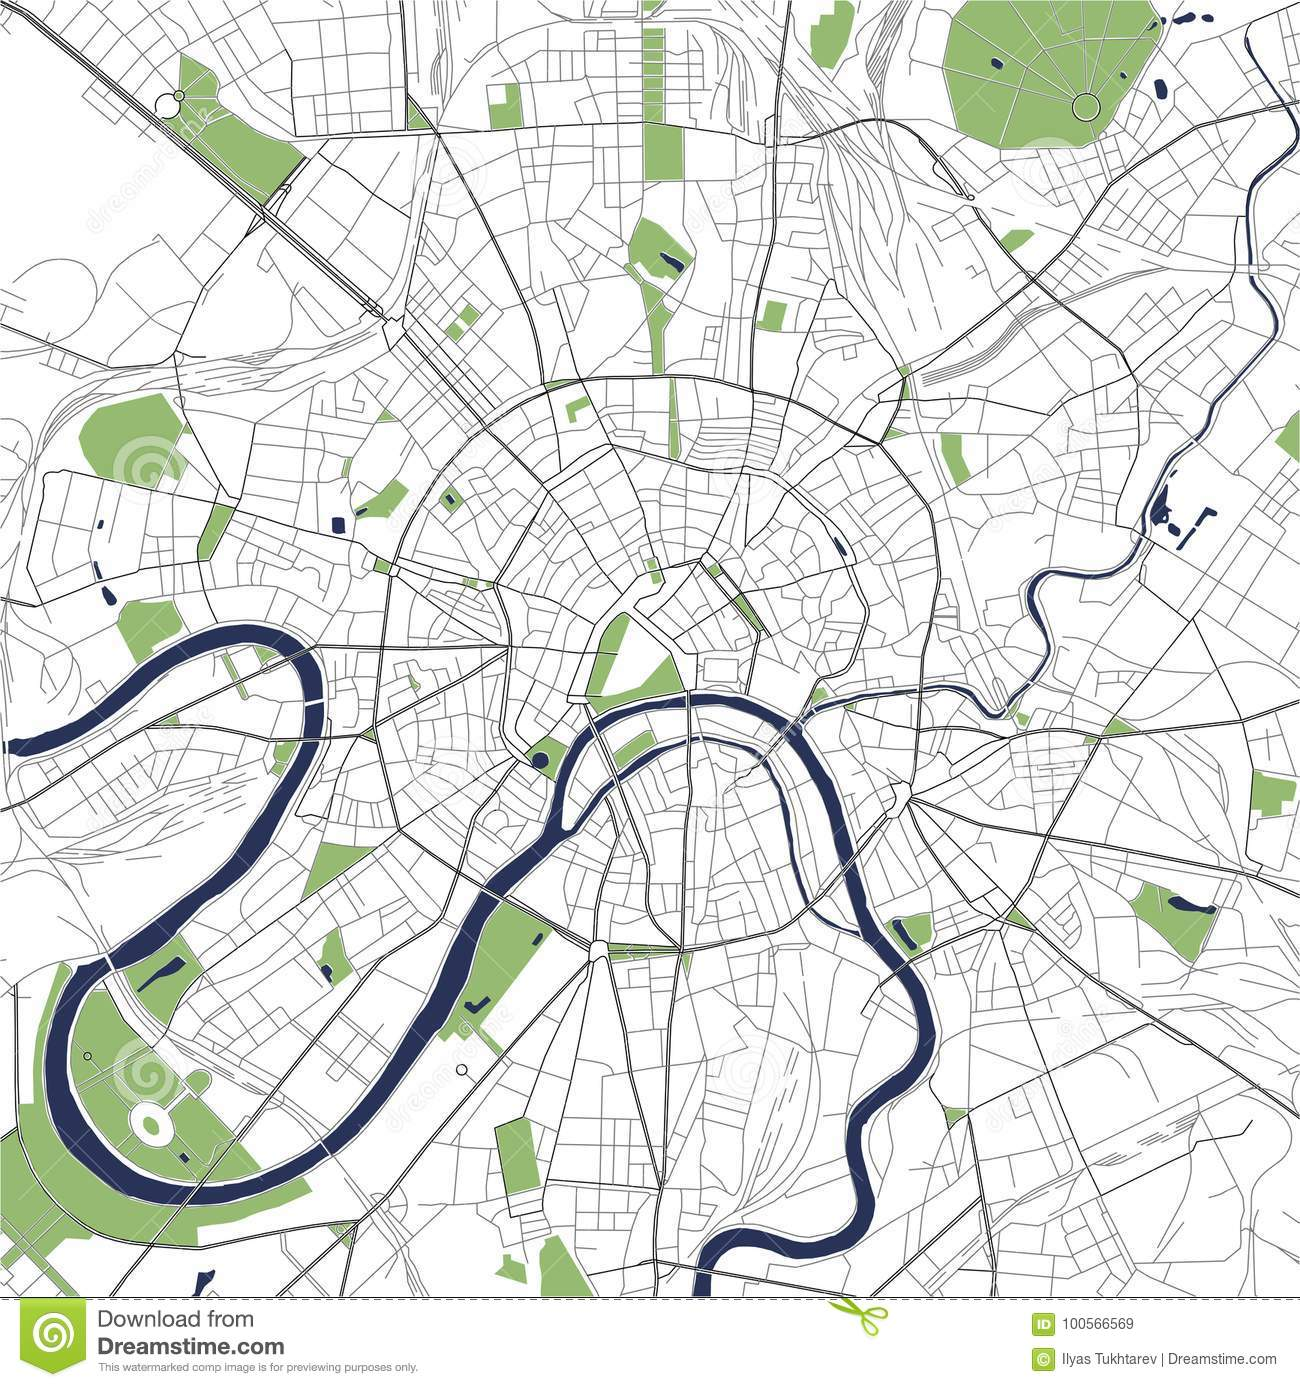 Map Of The City Of Moscow, Russia Stock Vector - Illustration of ...